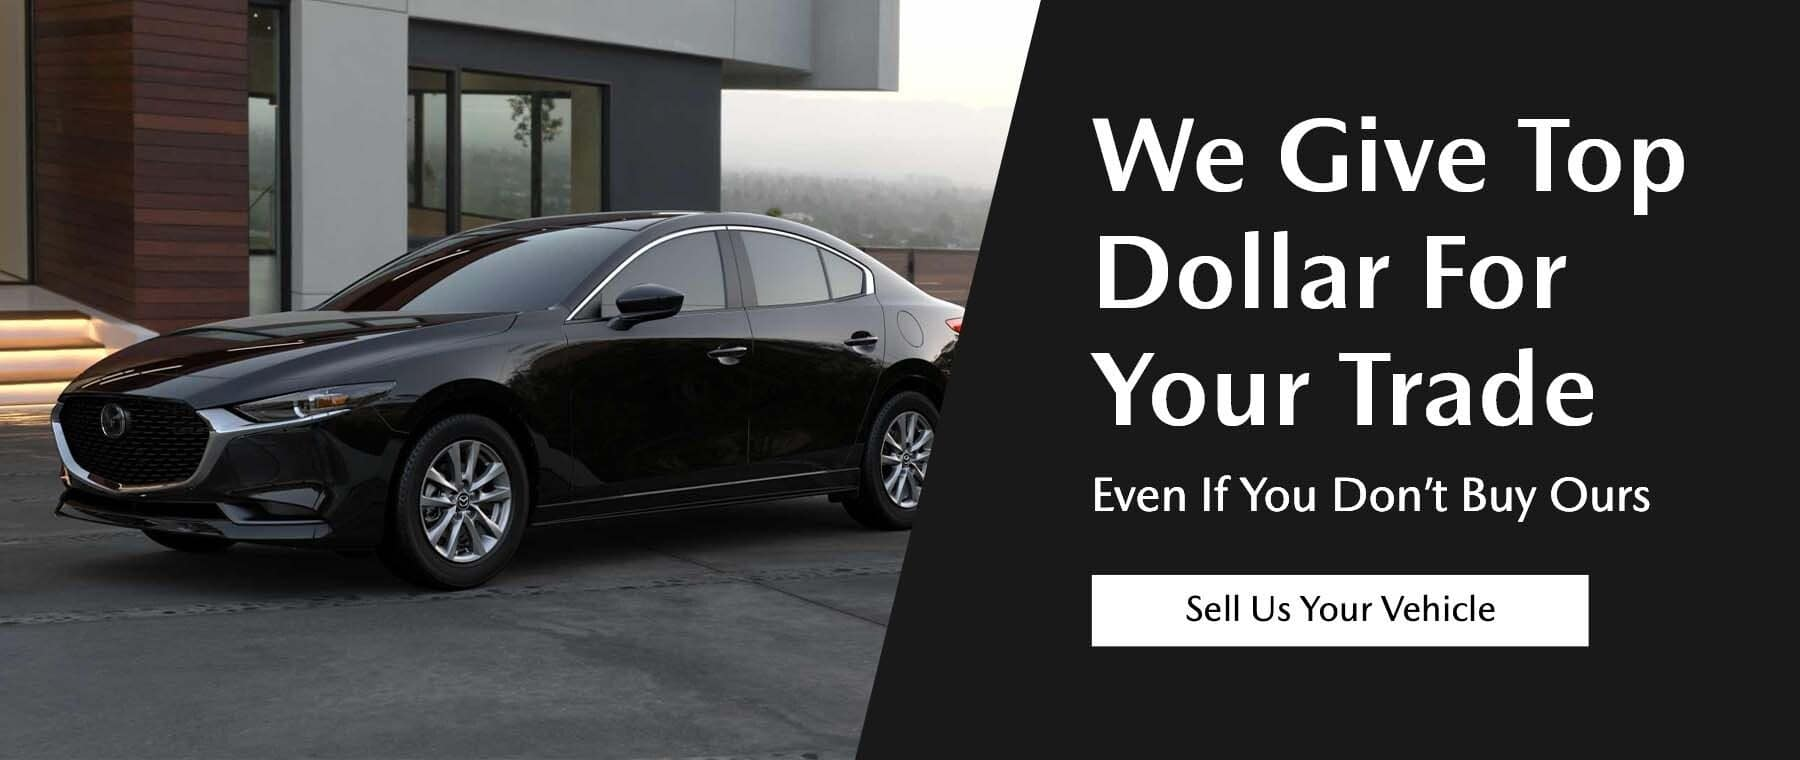 20-EAG-Mazda-Template_sell_your-vehicle